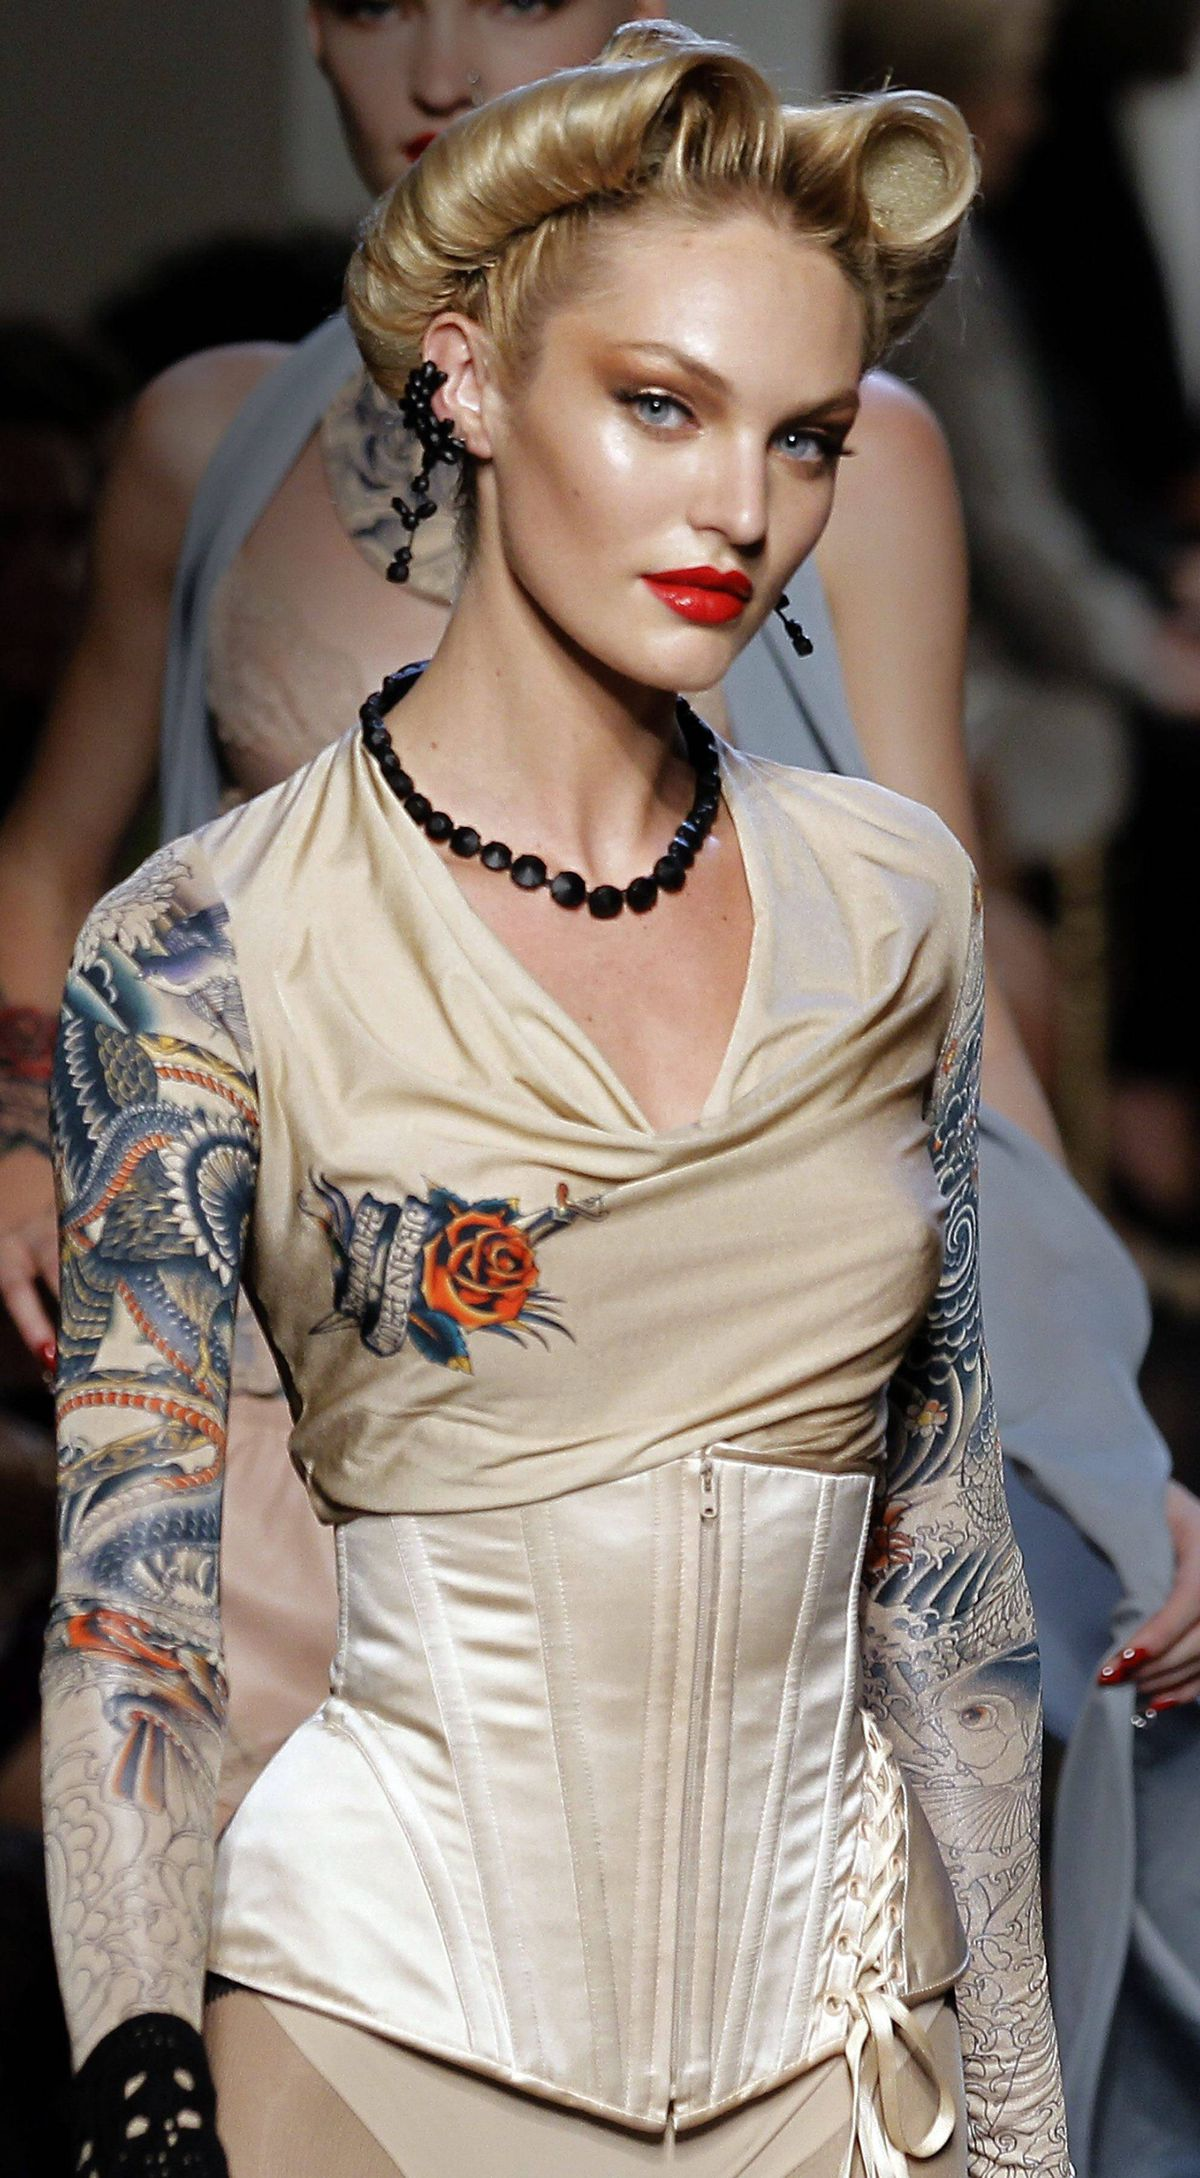 Sans music, the show was narrated by Charlotte Le Bon, who offered up distracting tidbits about each model like a bachelorette auction. But deconstructed shirts, trenches and corsets were evidence that Gaultier has not lost his touch – and the tattoo stuff was proof that he still mines the street for chic.